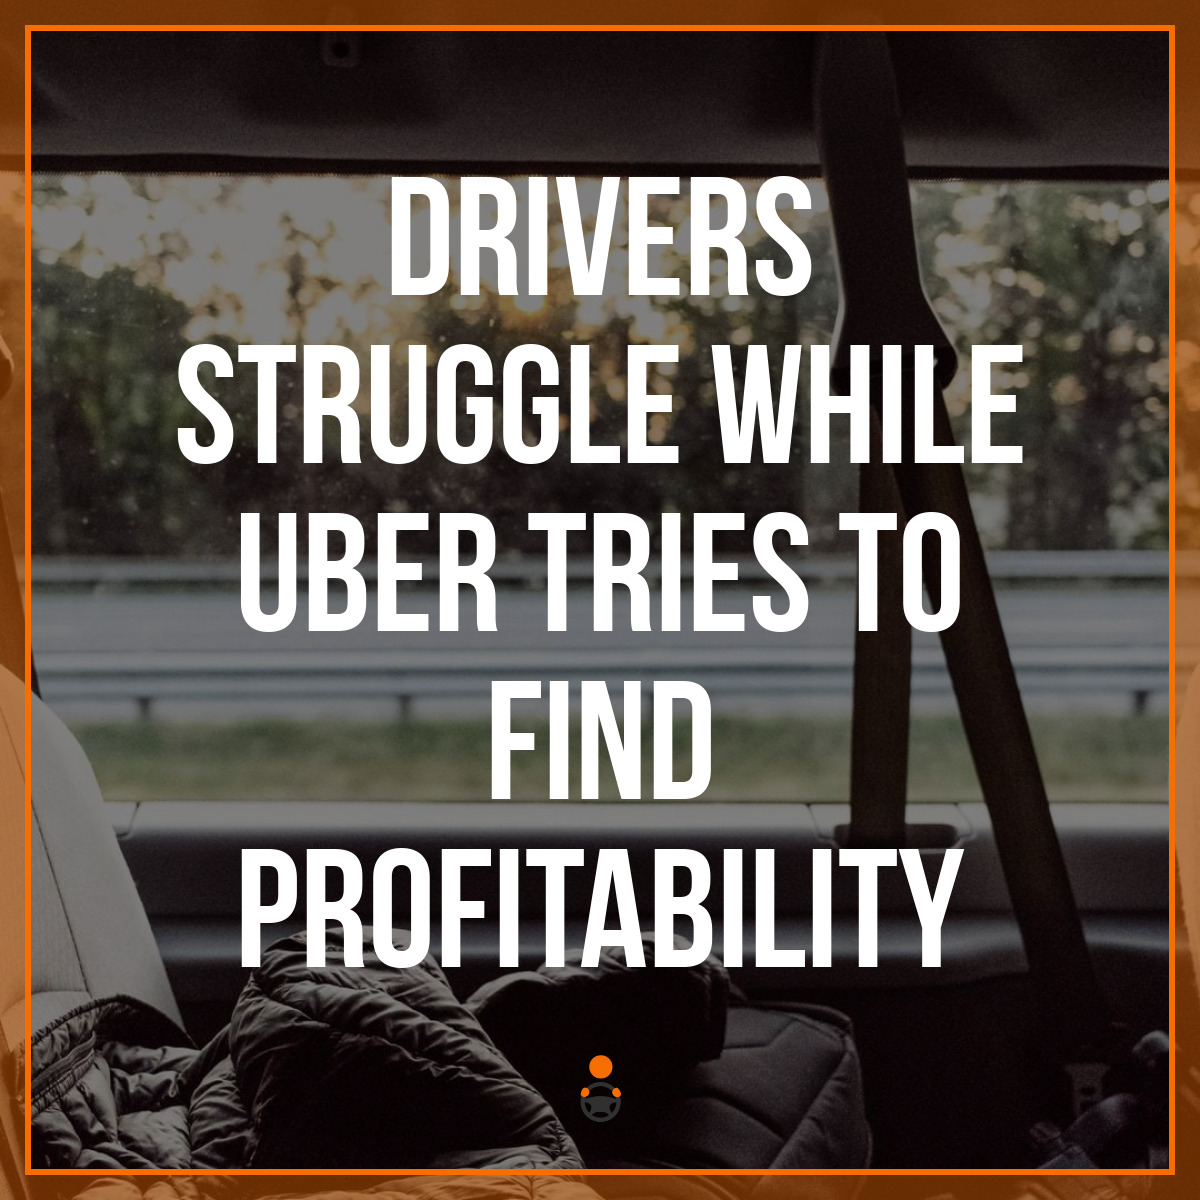 Drivers Struggle While Uber Tries to Find Profitability